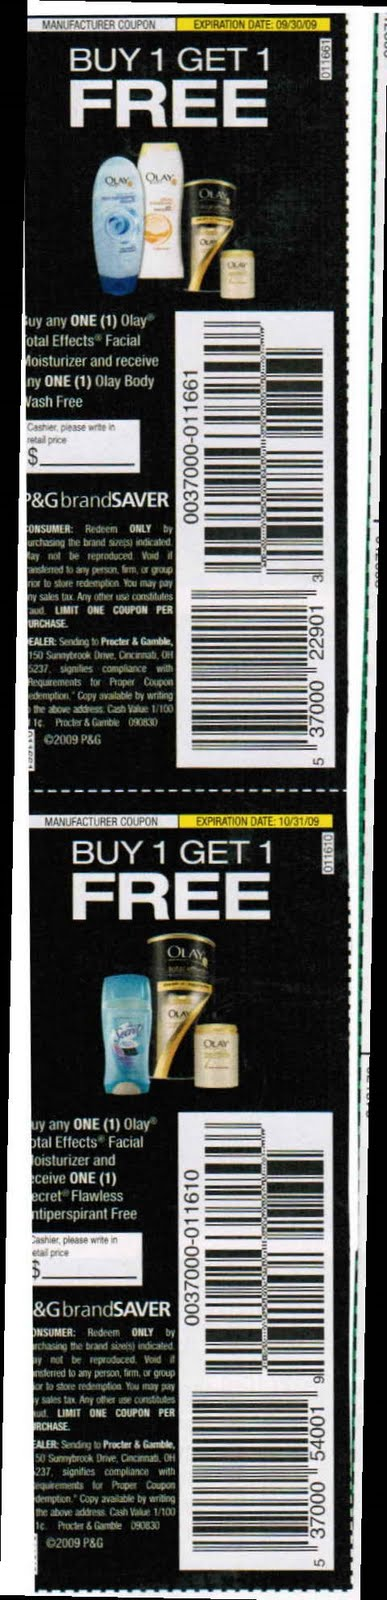 free coupons online. Free Coupons Online: Oil of